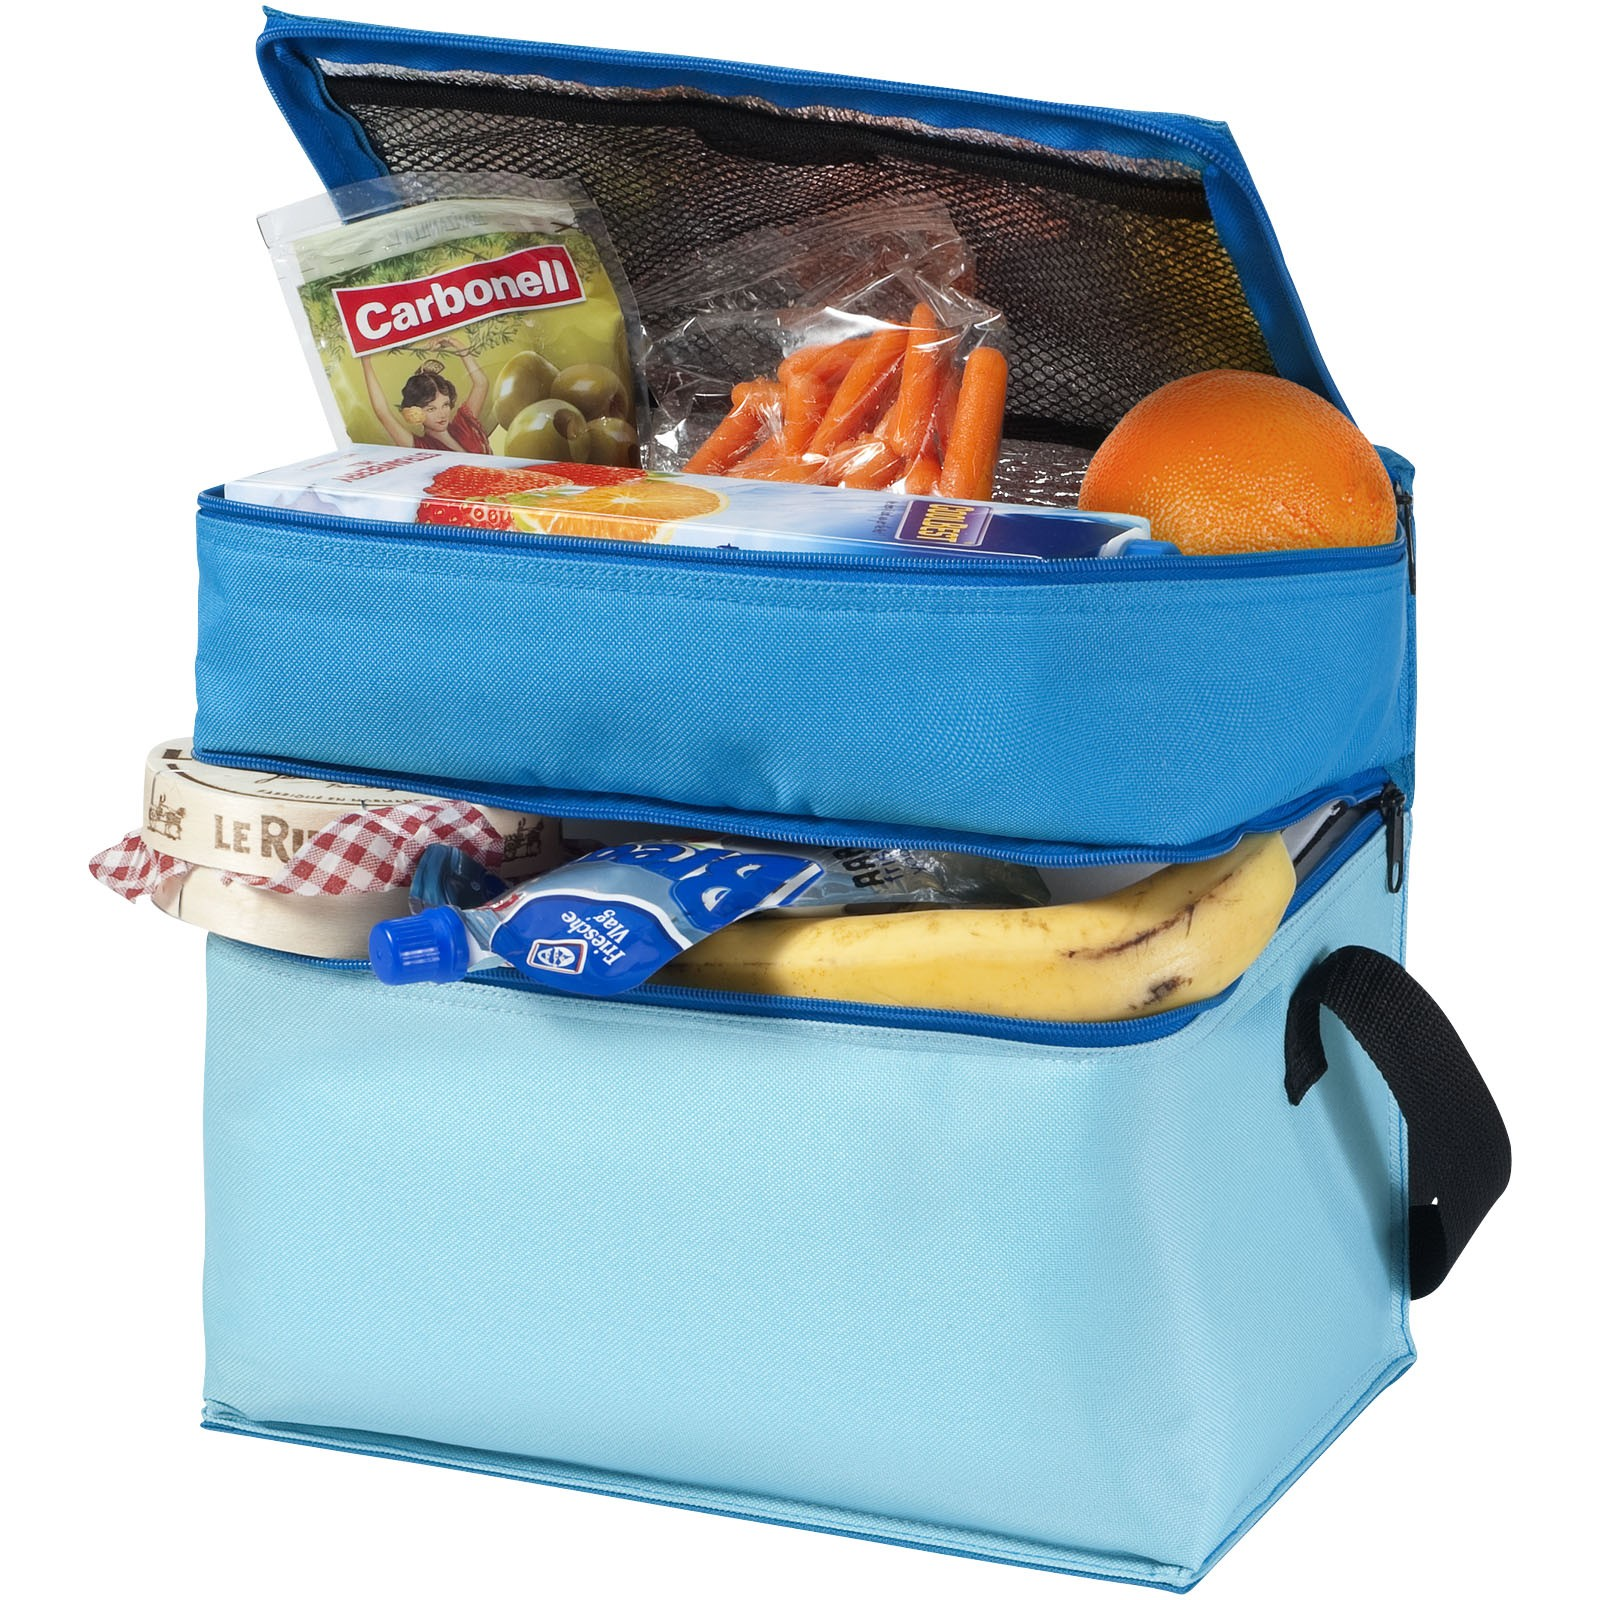 Trias 2-compartment cooler bag - Blue